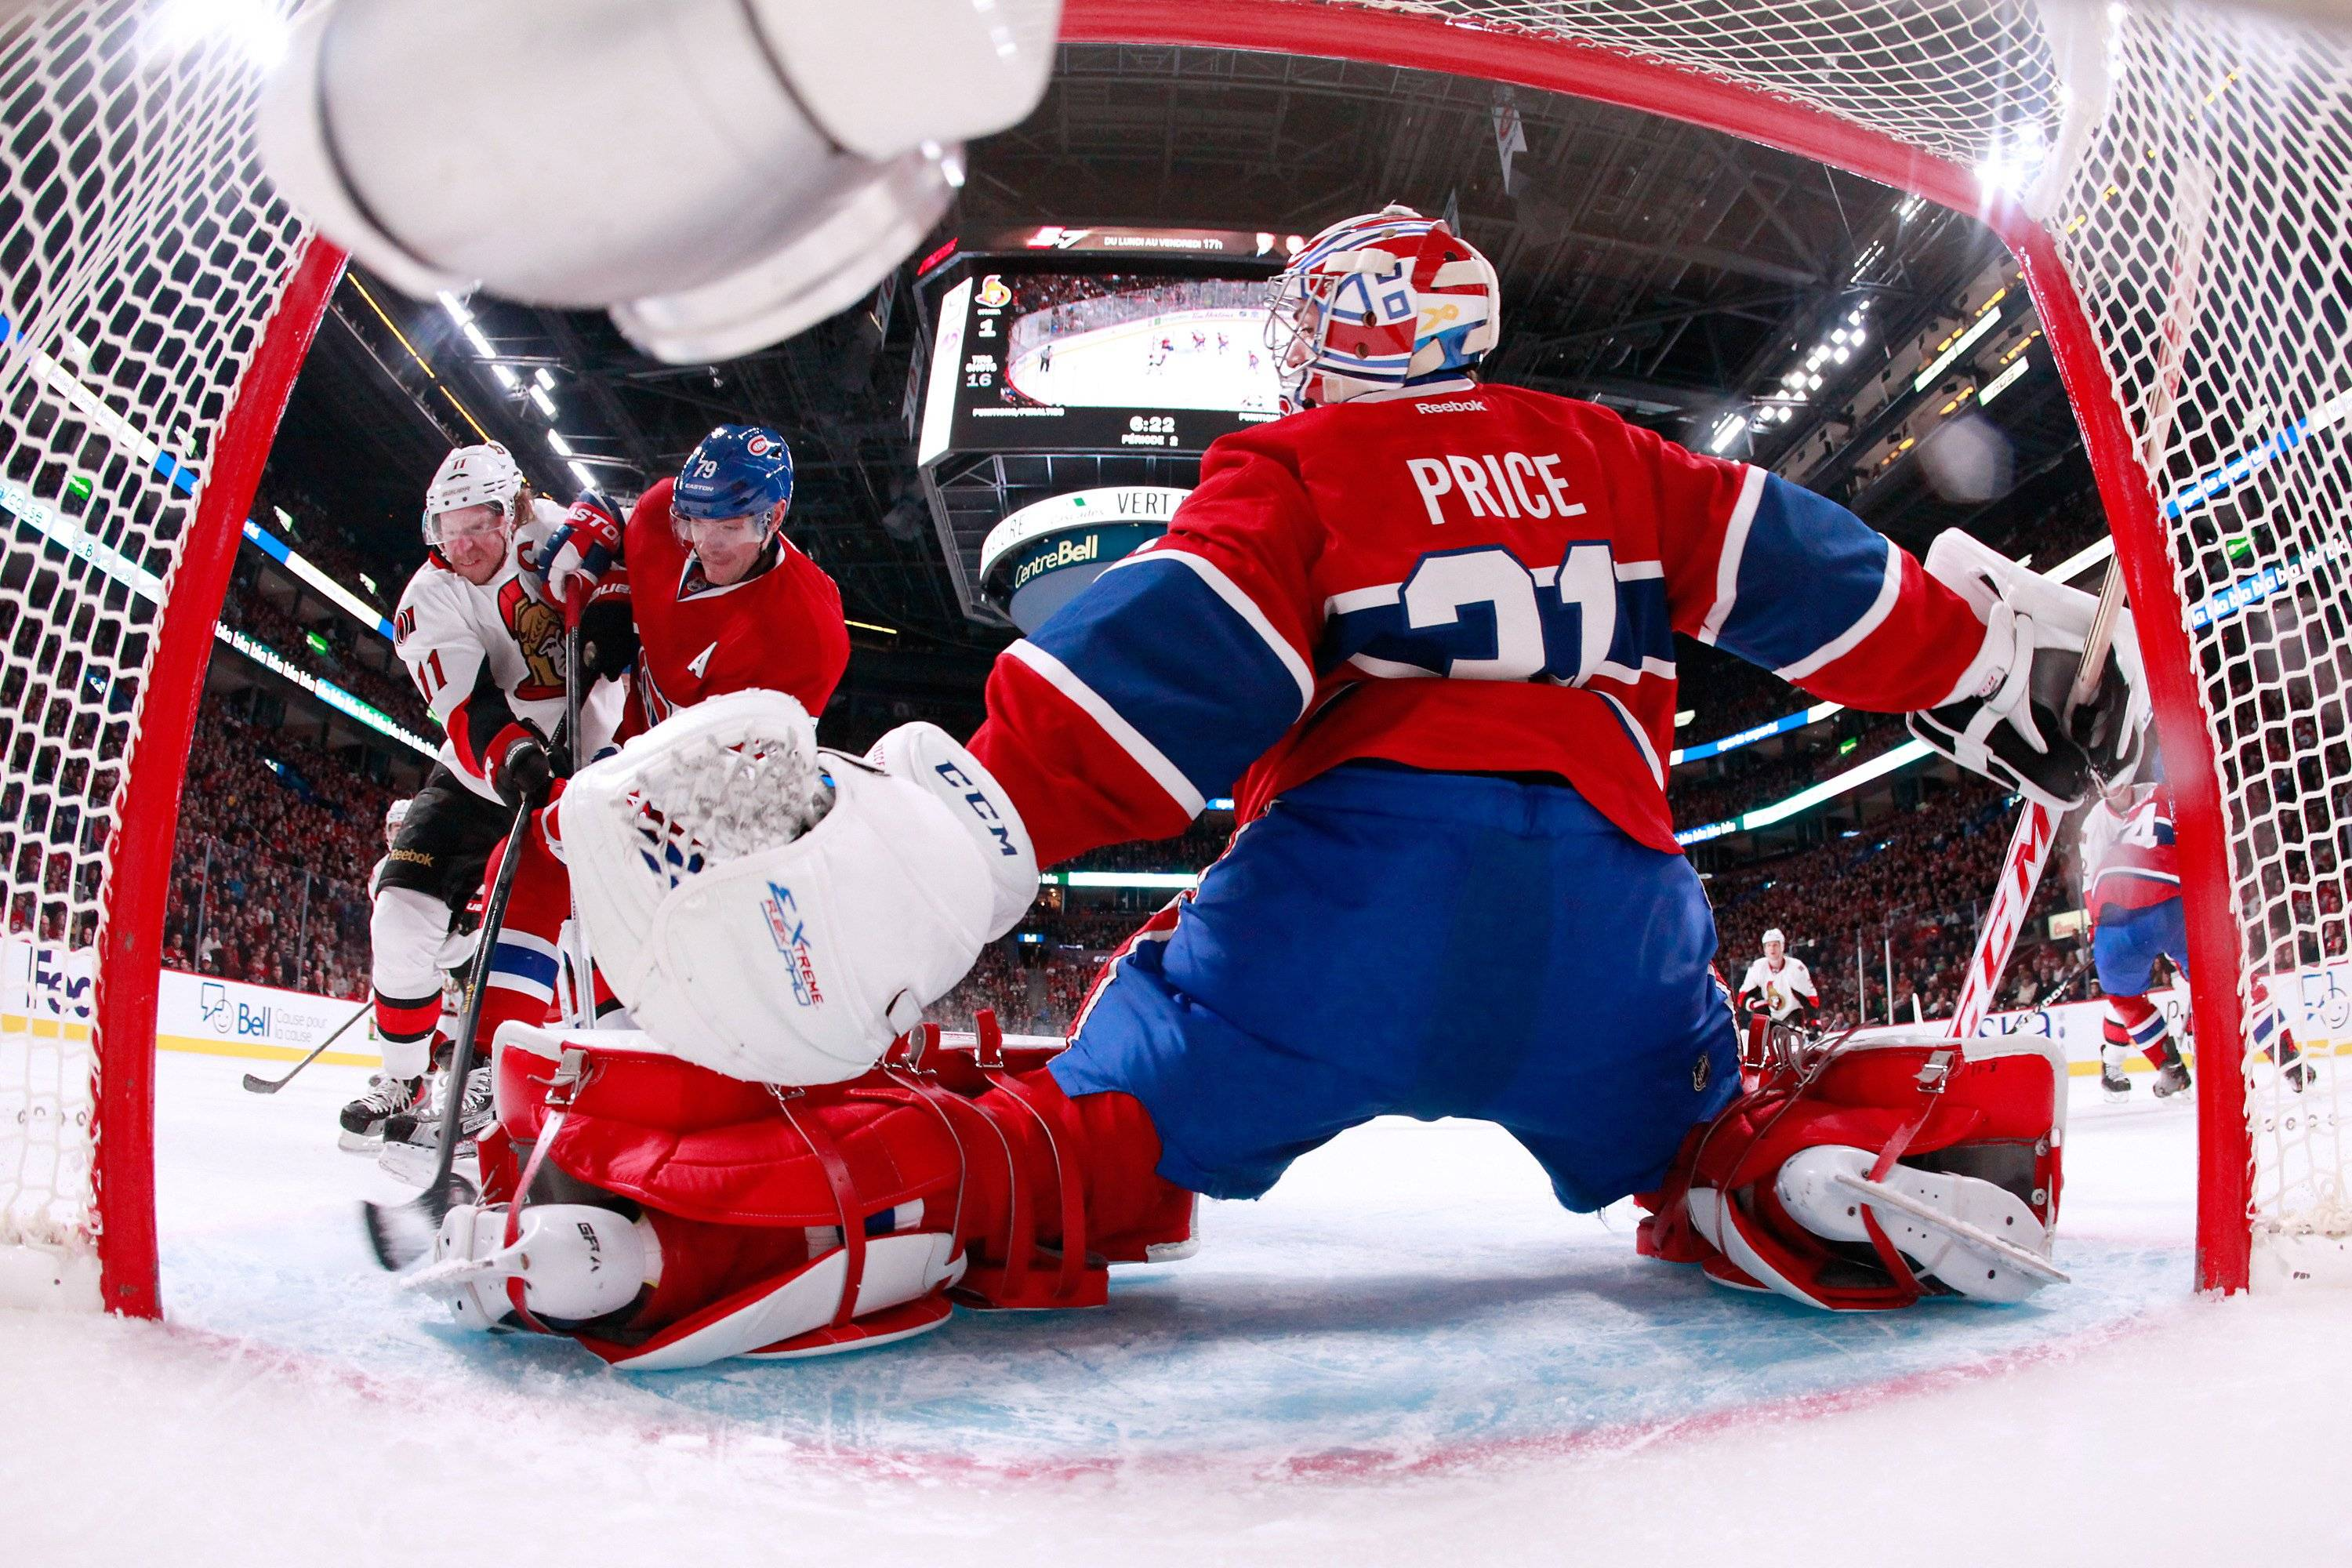 MONTREAL CANADIENS nhl hockey